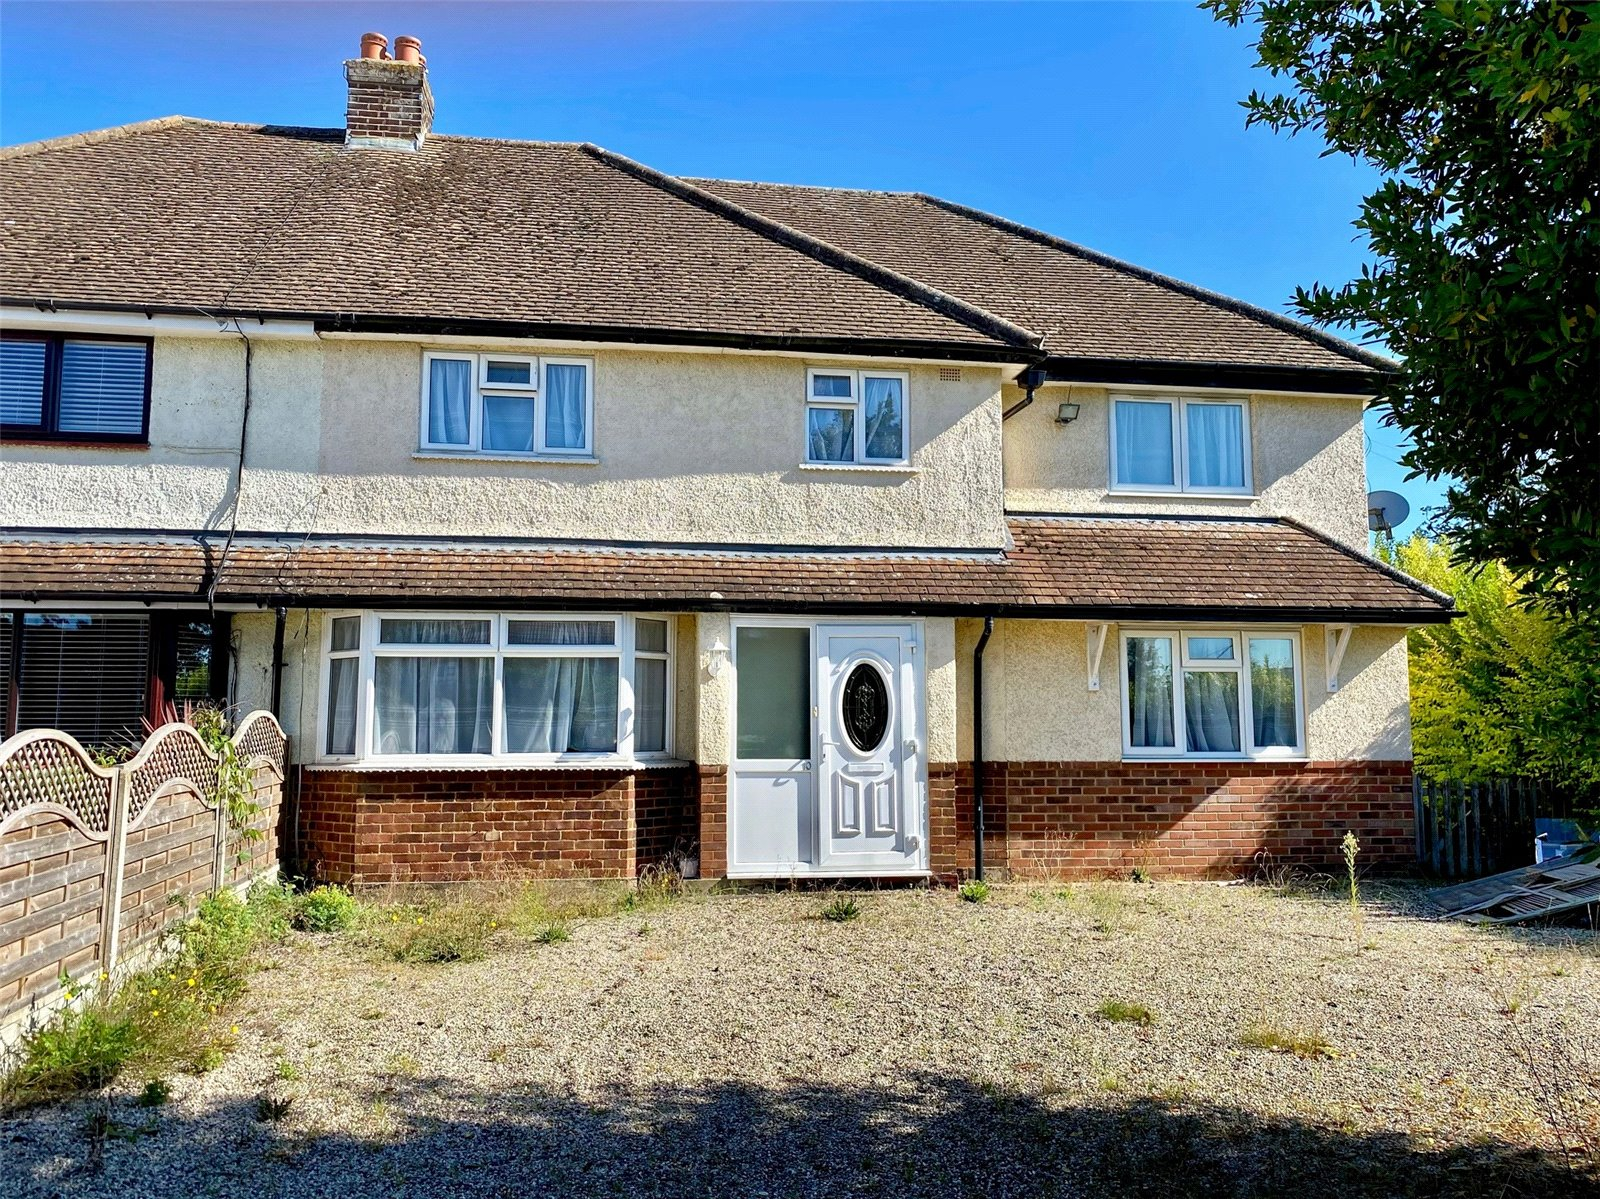 5 bed house for sale in St. Dunstans Road, Hunsdon, SG12